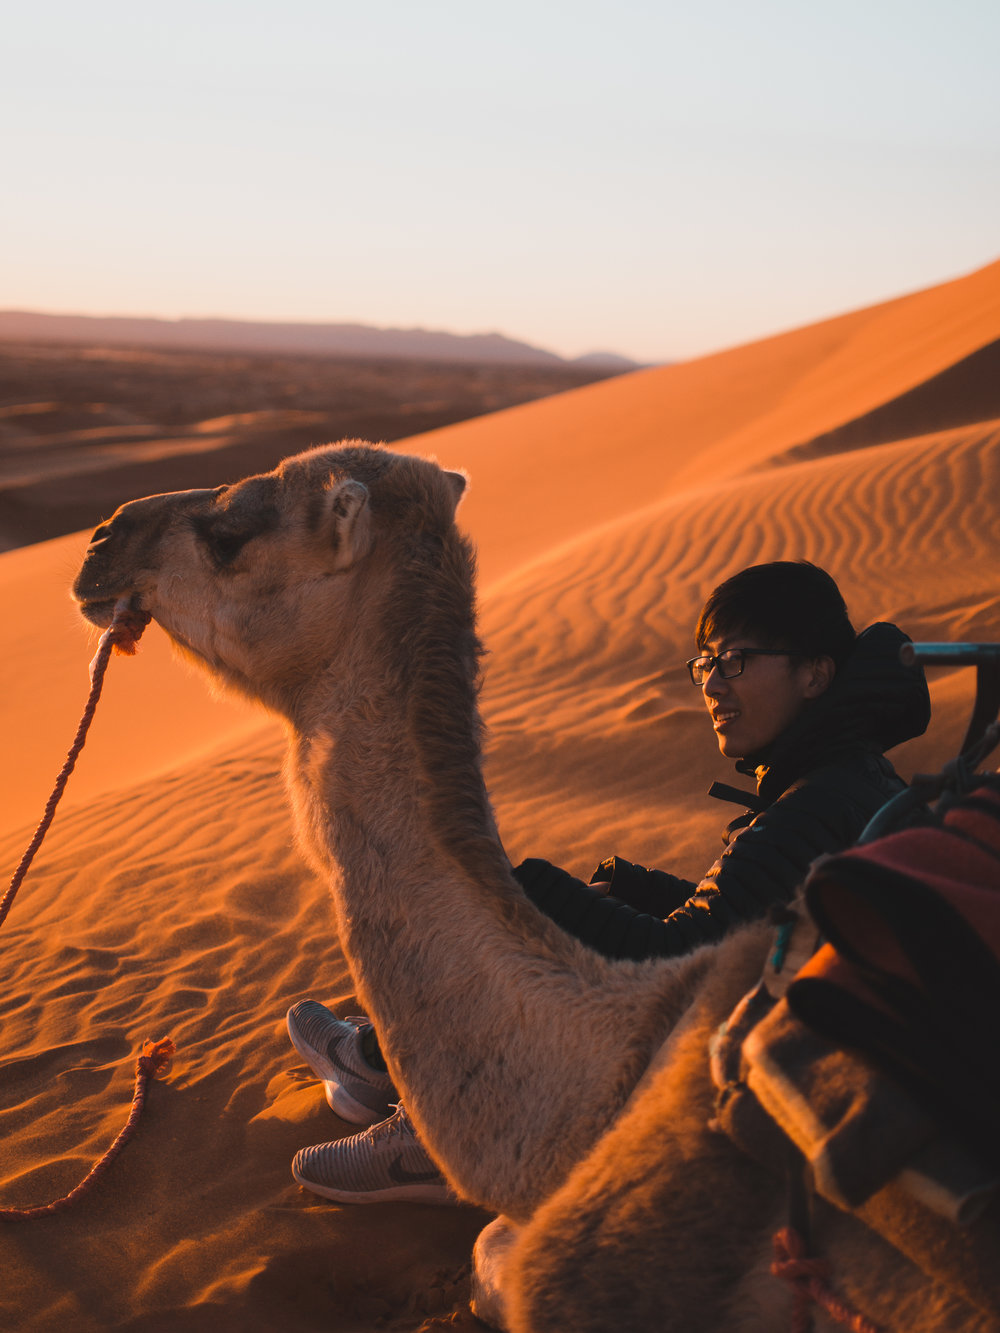 Backpacking to the Sahara Desert has been one of my favorite travel moments